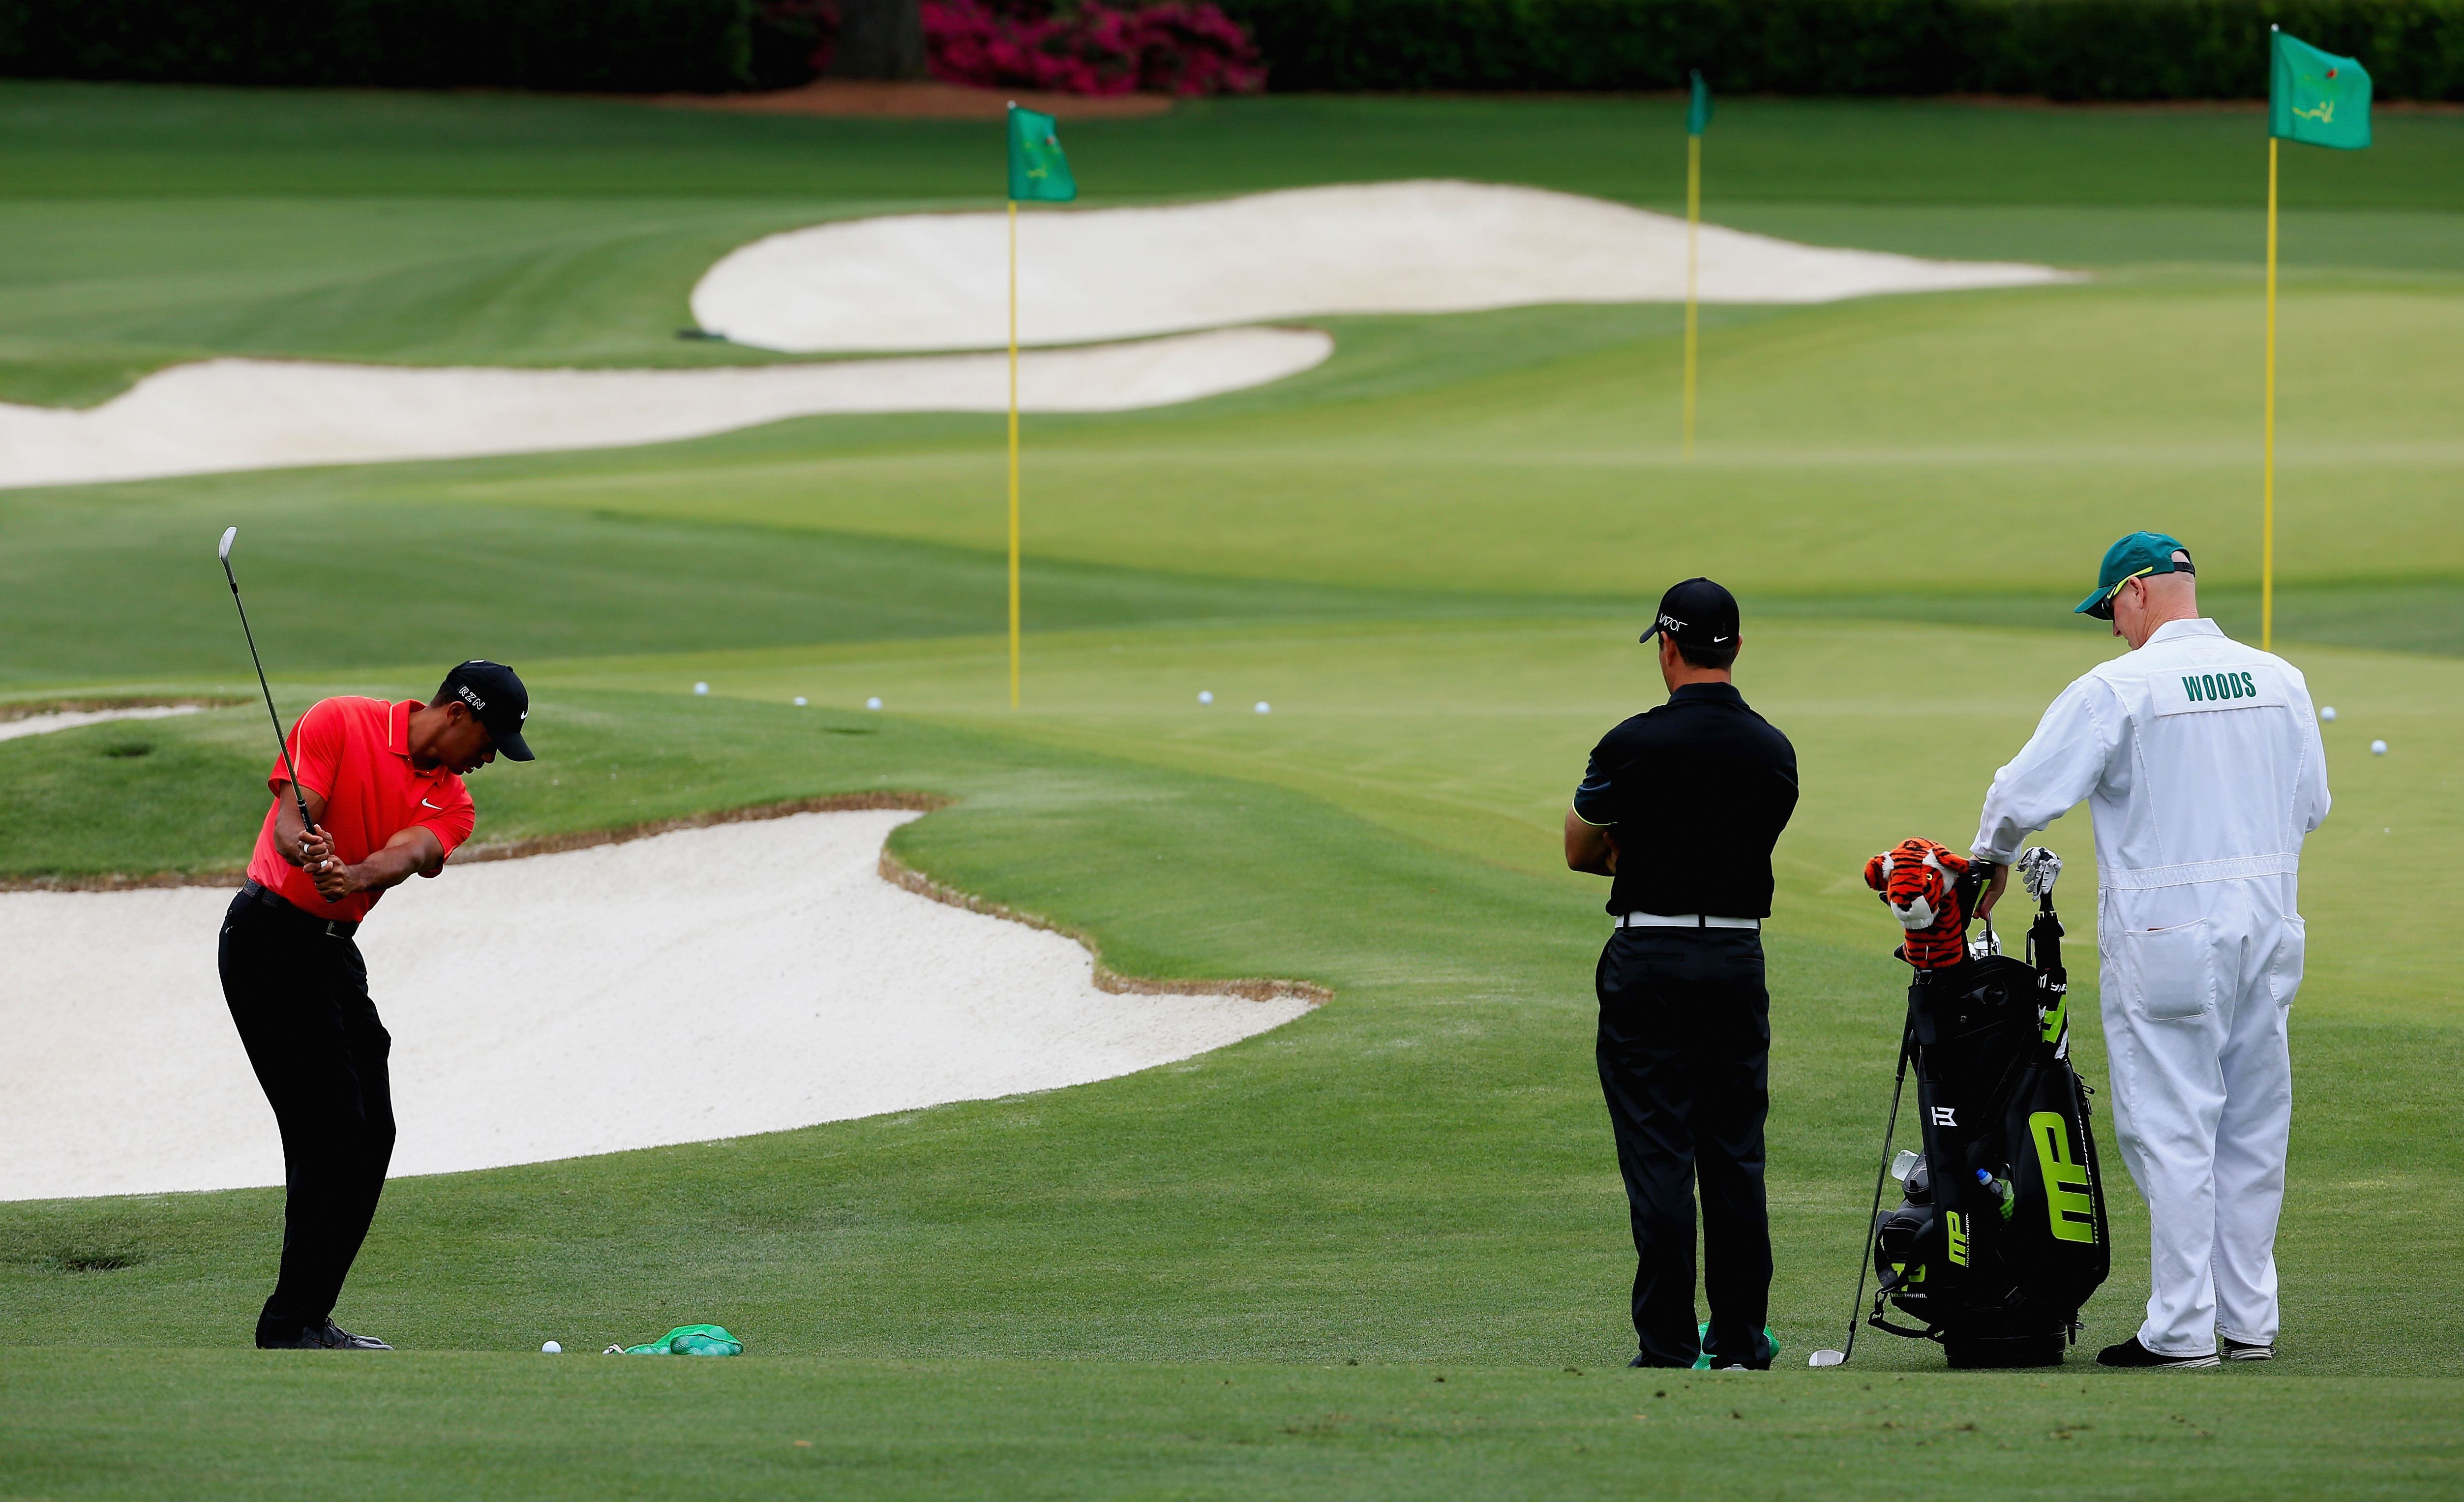 Woods's short game was a revelation at the Masters (Photo: Getty Images)